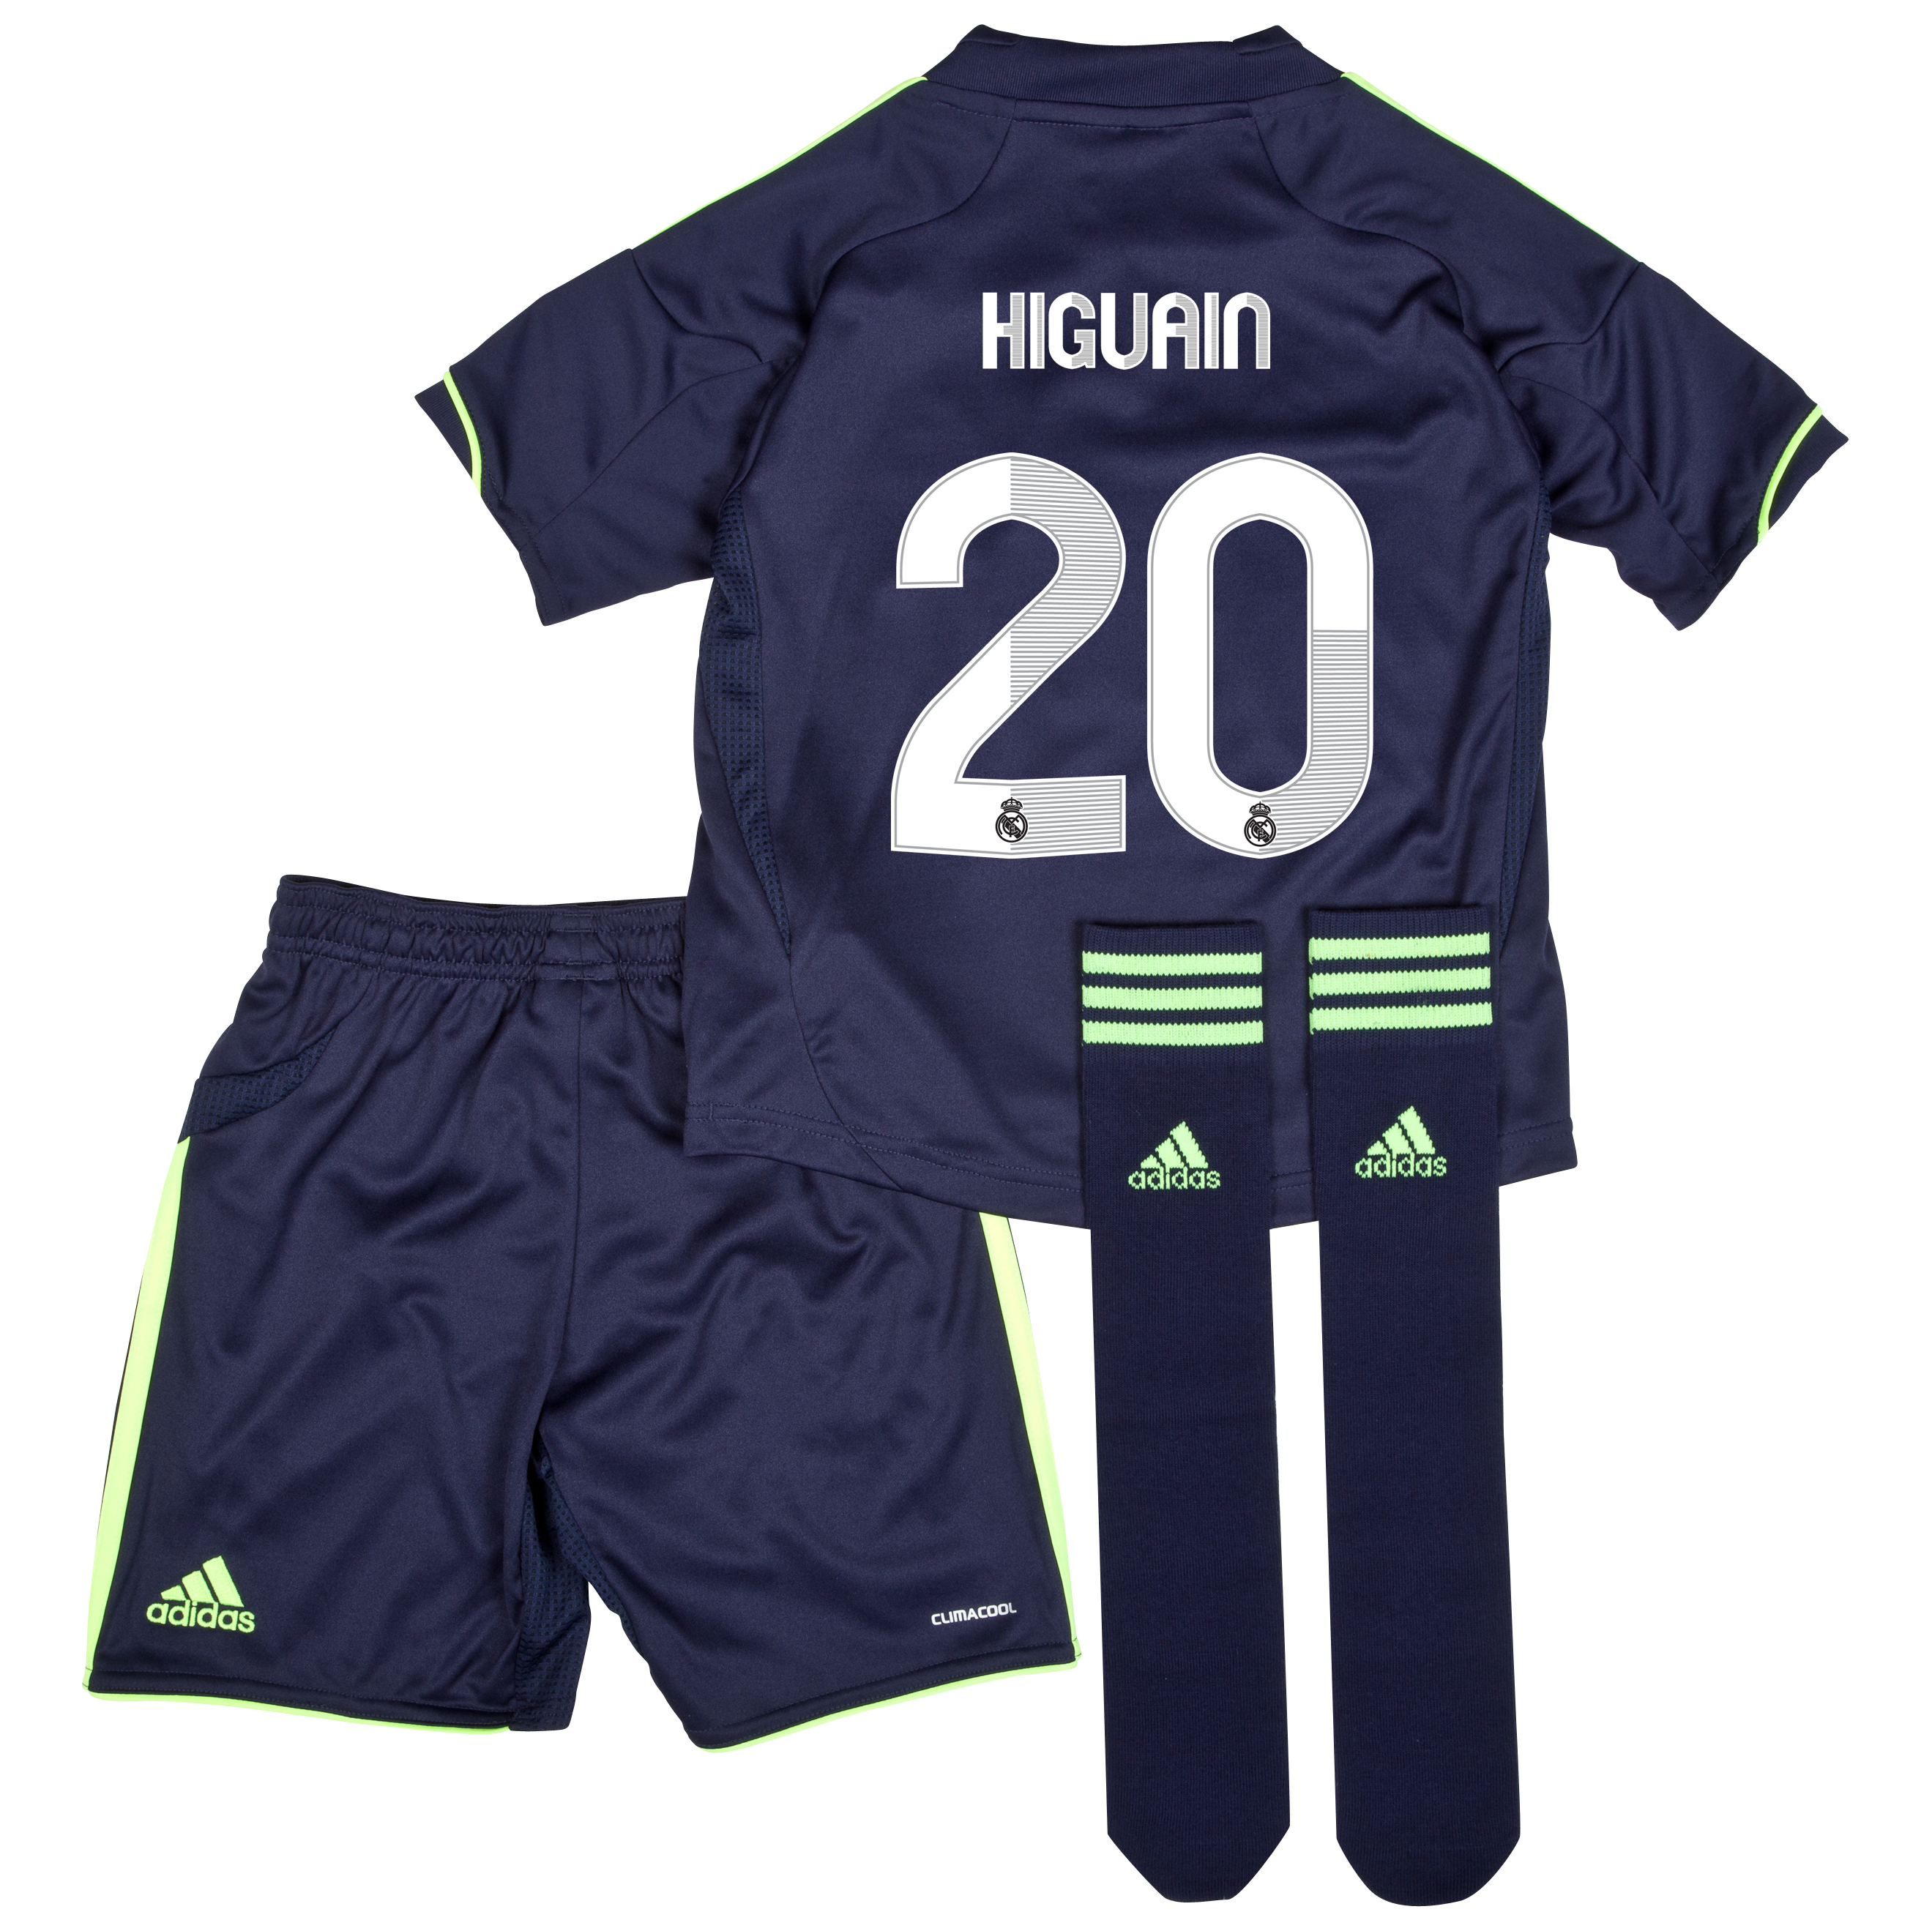 Mini kit visitante Real Madrid 2012/13 con impresión 20 Higuaín